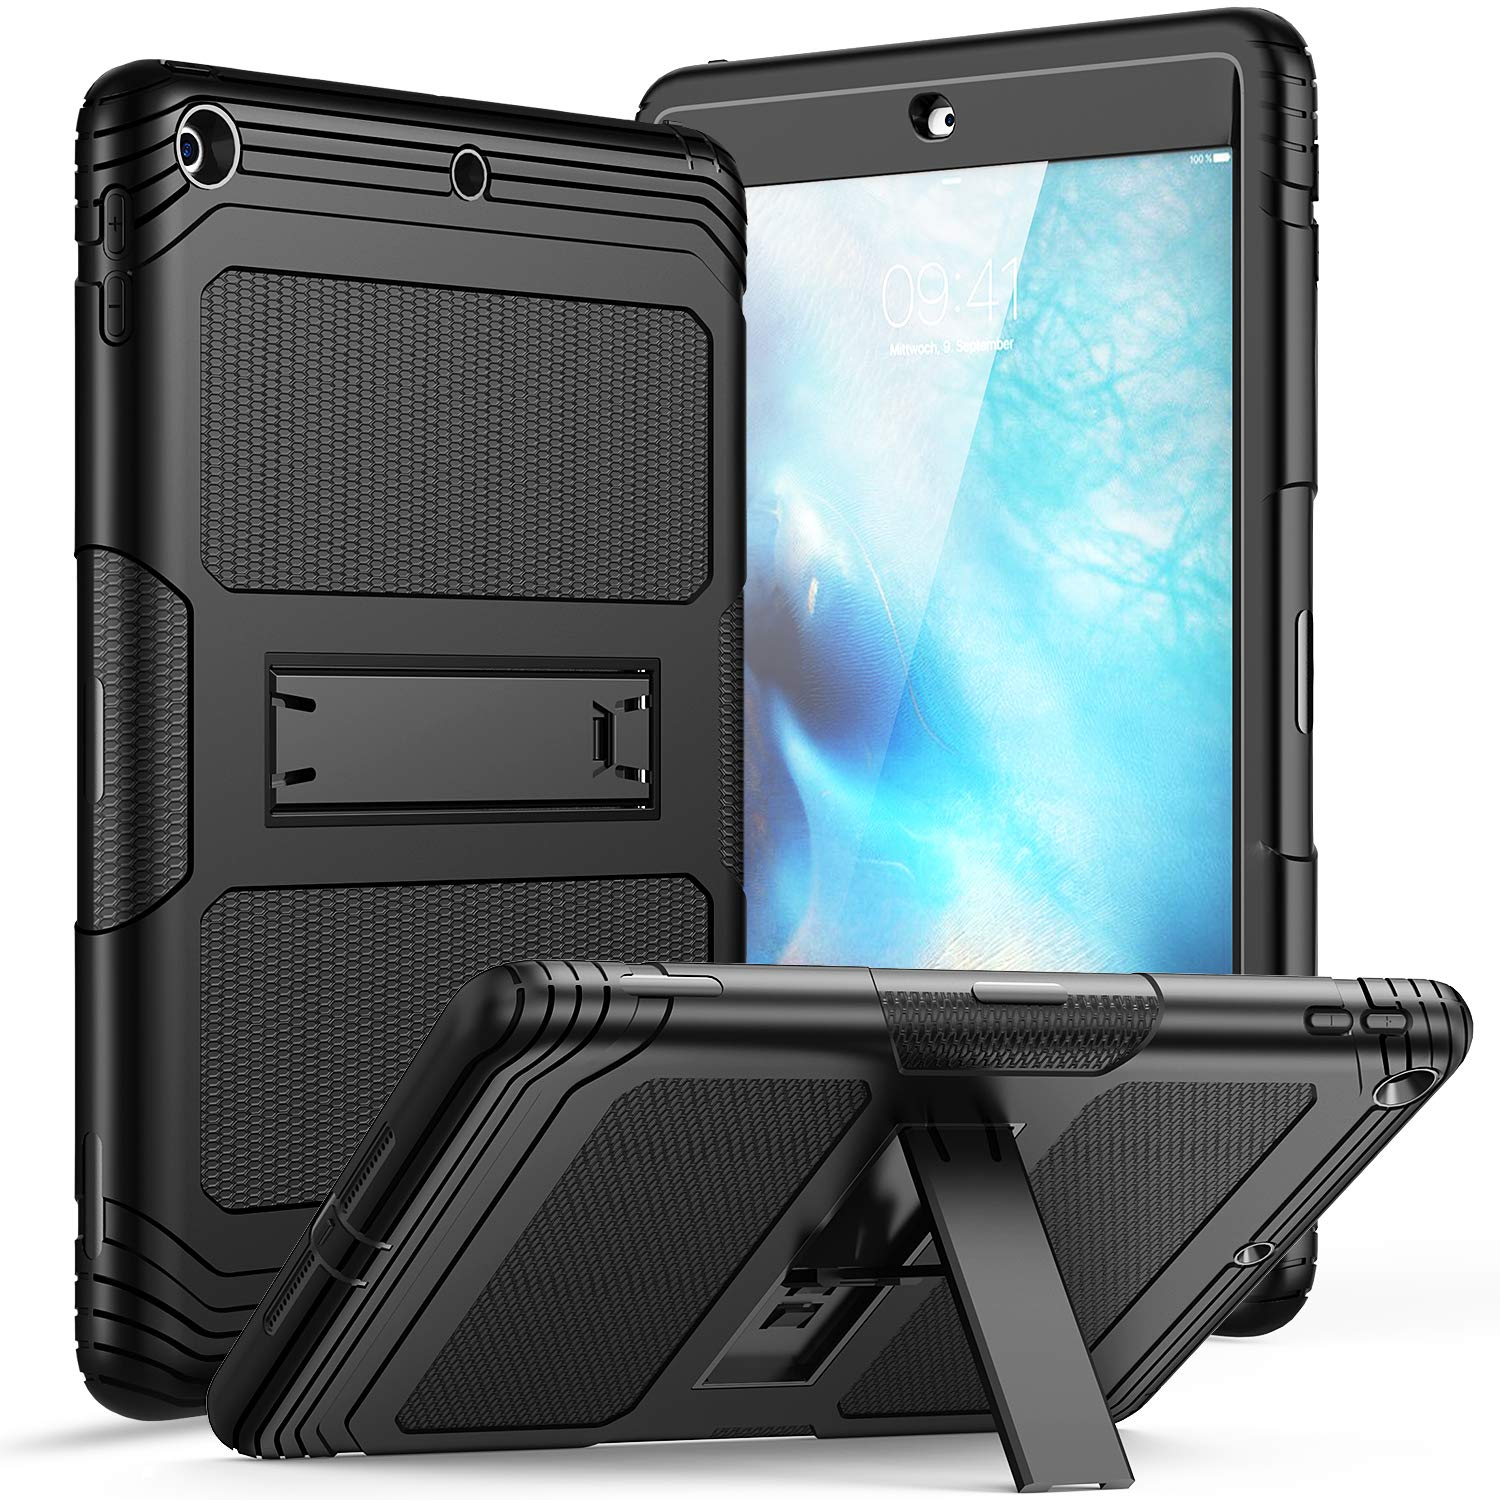 SKYLMW iPad 6th Generation Case,iPad 5th Gen Cover,iPad 9.7 Case,Shockproof Anti-dust Anti-Scratched Rubber Hard Plastic Drop Protection with Stand Protective Cases for iPad 2017/2018 9.7 inch,Black